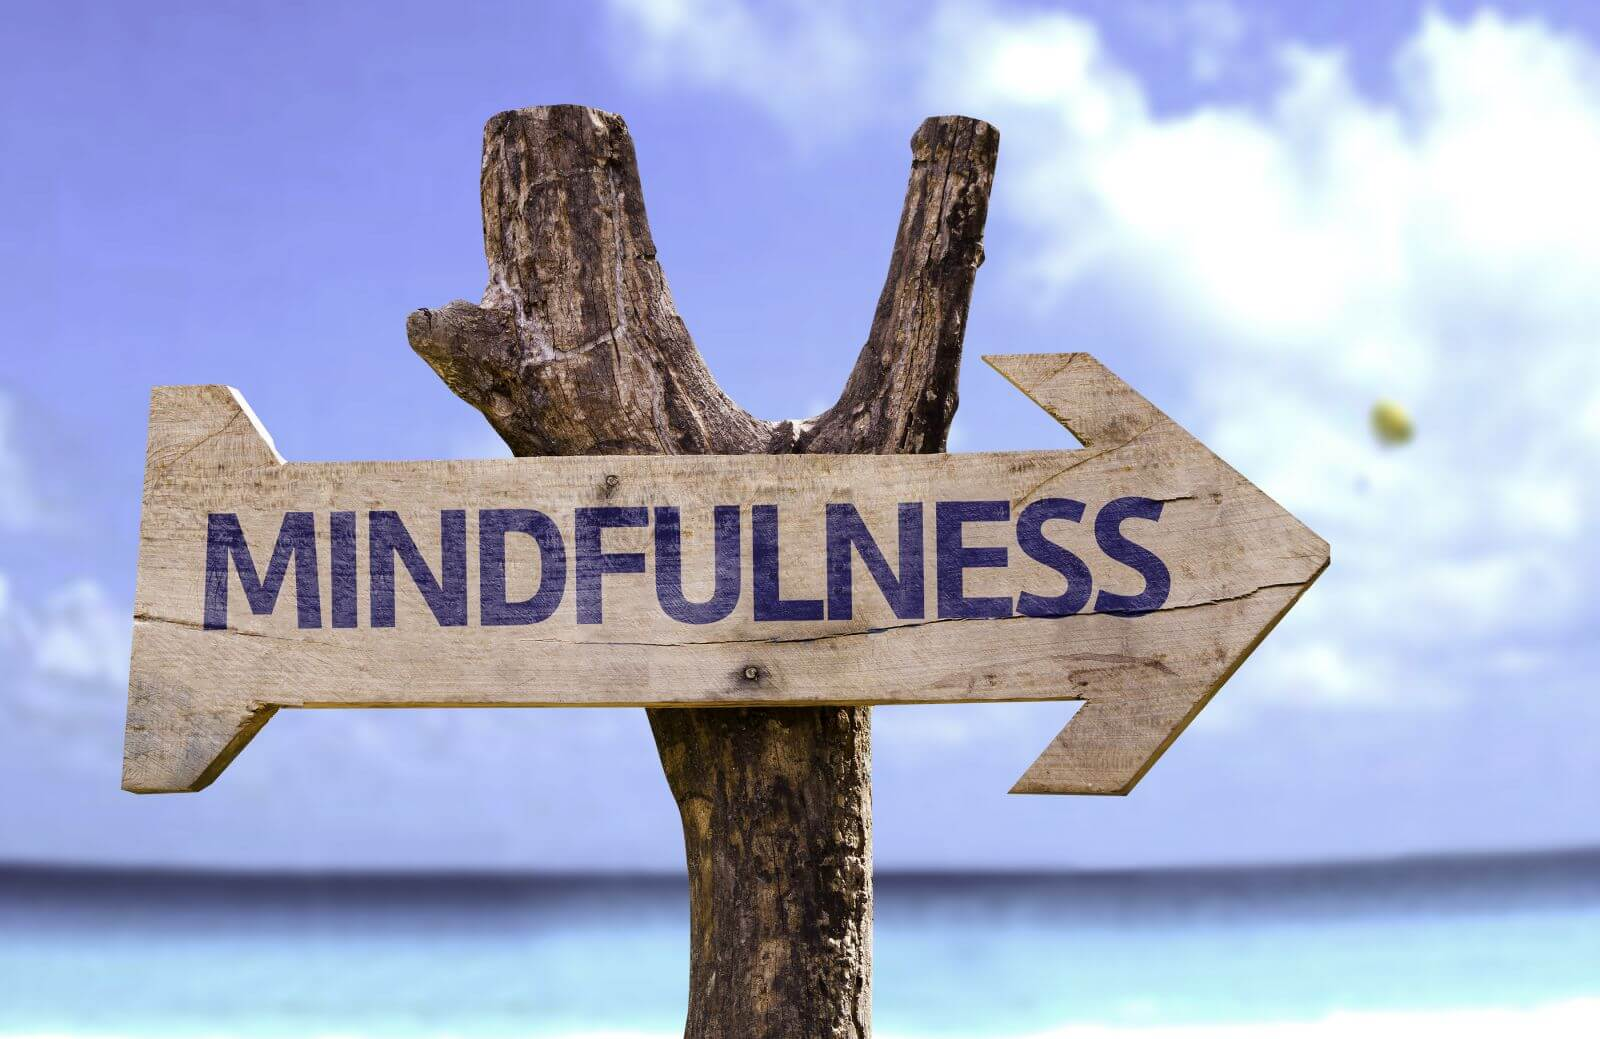 Mindfulness may mean more than you think